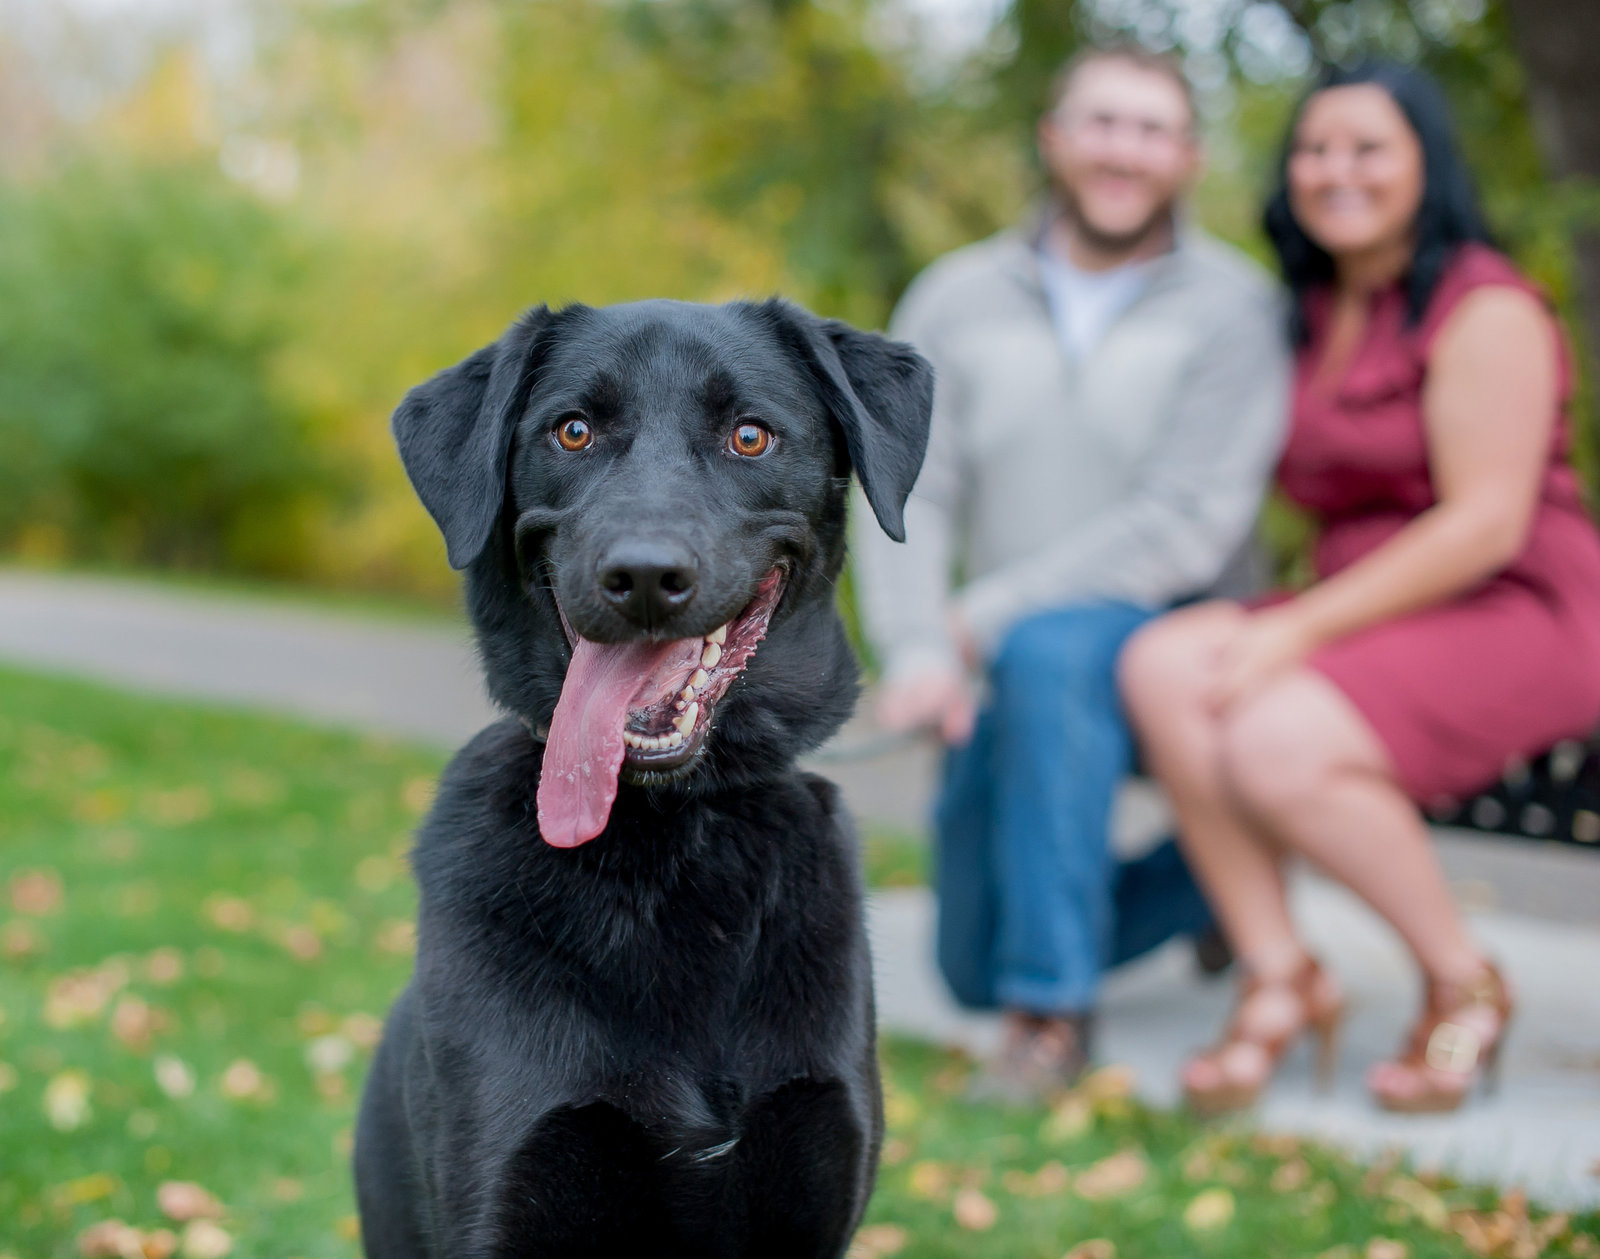 Engagement sessions with Pets Kriskandel